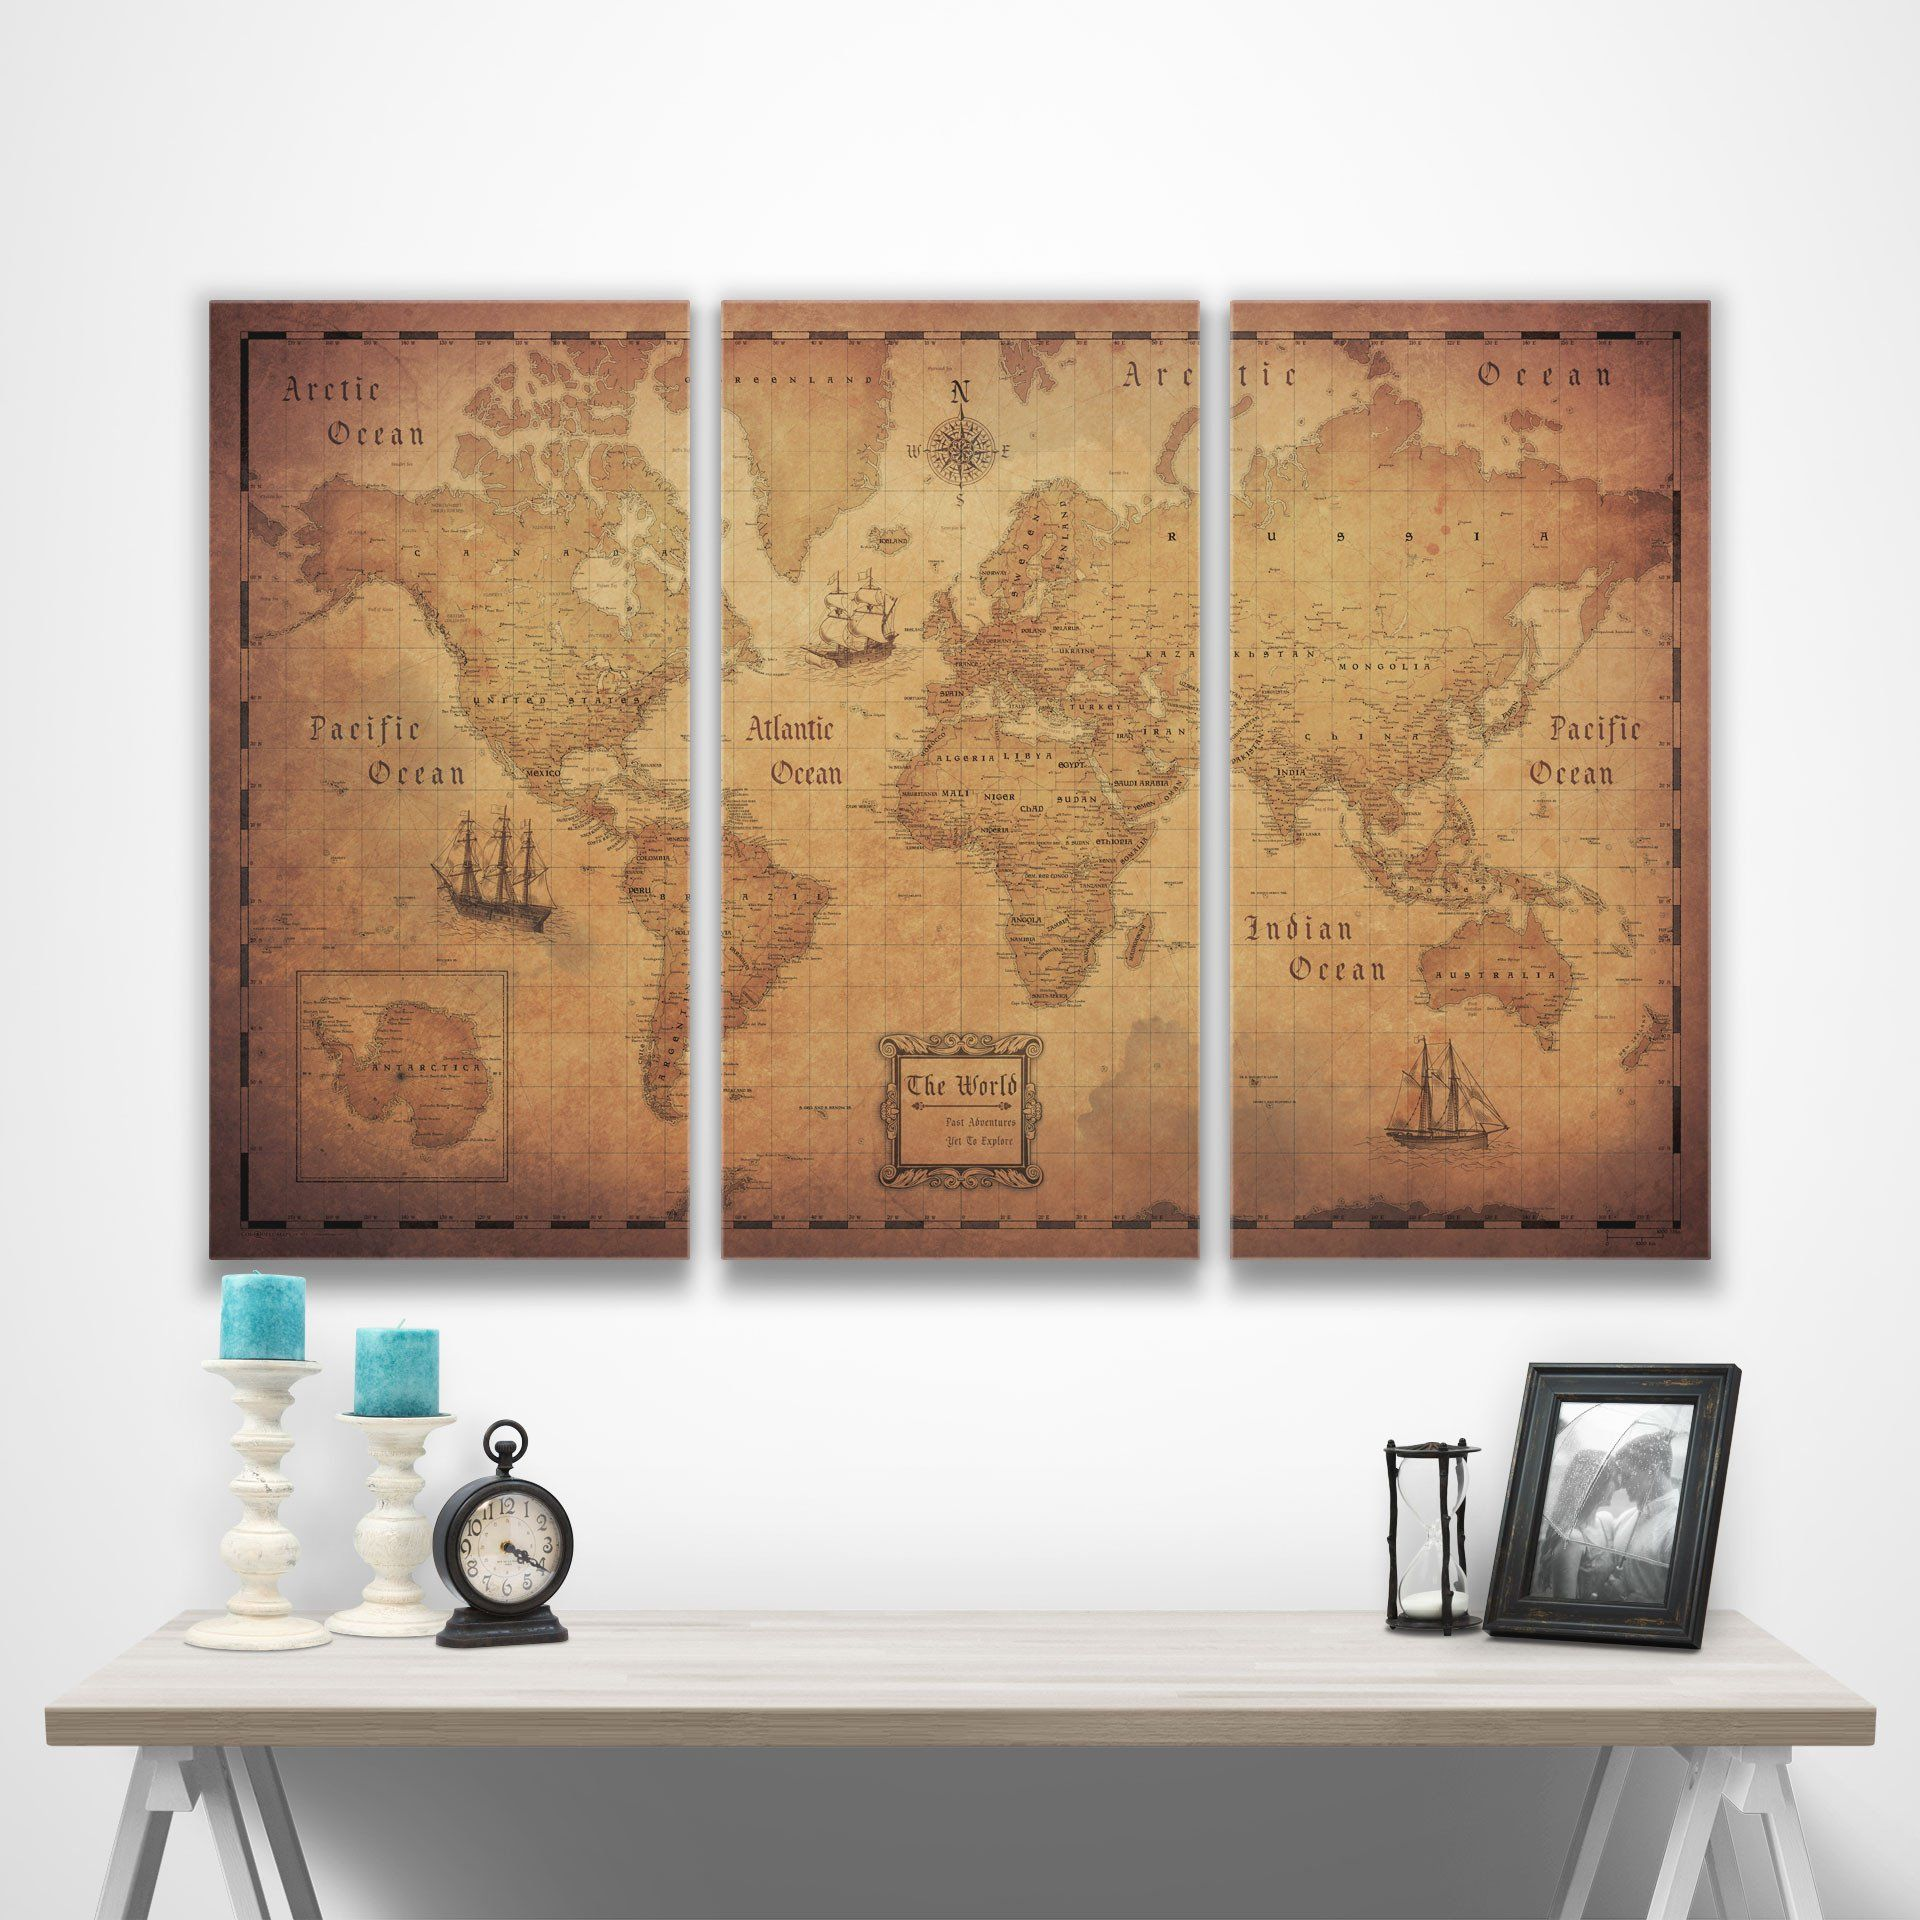 World travel map pin board wpush pins golden aged pin boards world travel map pin board wpush pins golden aged gumiabroncs Choice Image